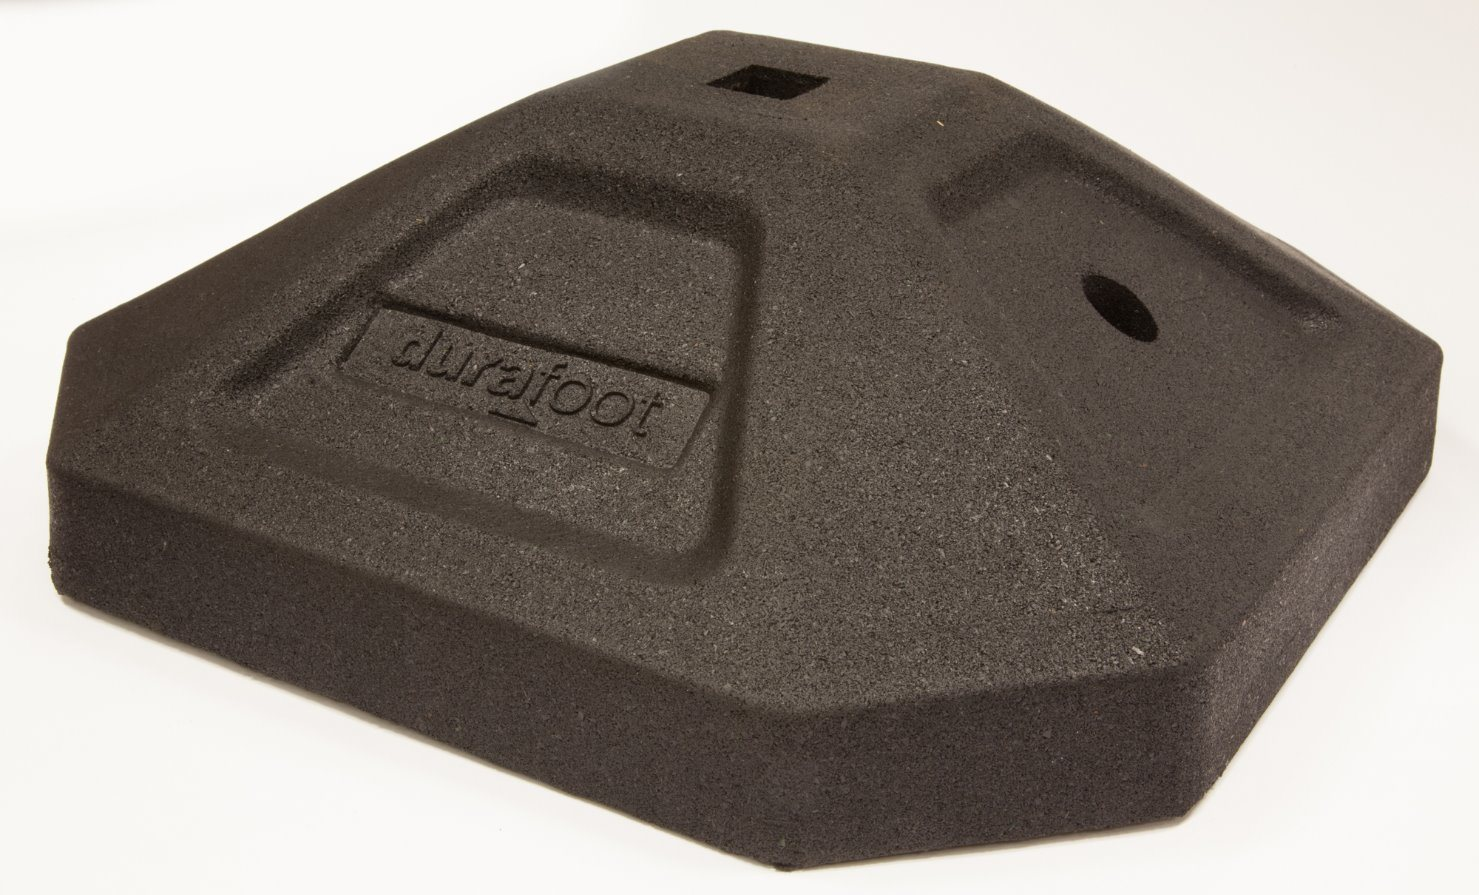 Durafoot 500 (50X50) Square Heavy 25kg Rubber Support Foot Rooftop Block Base pictures & photos